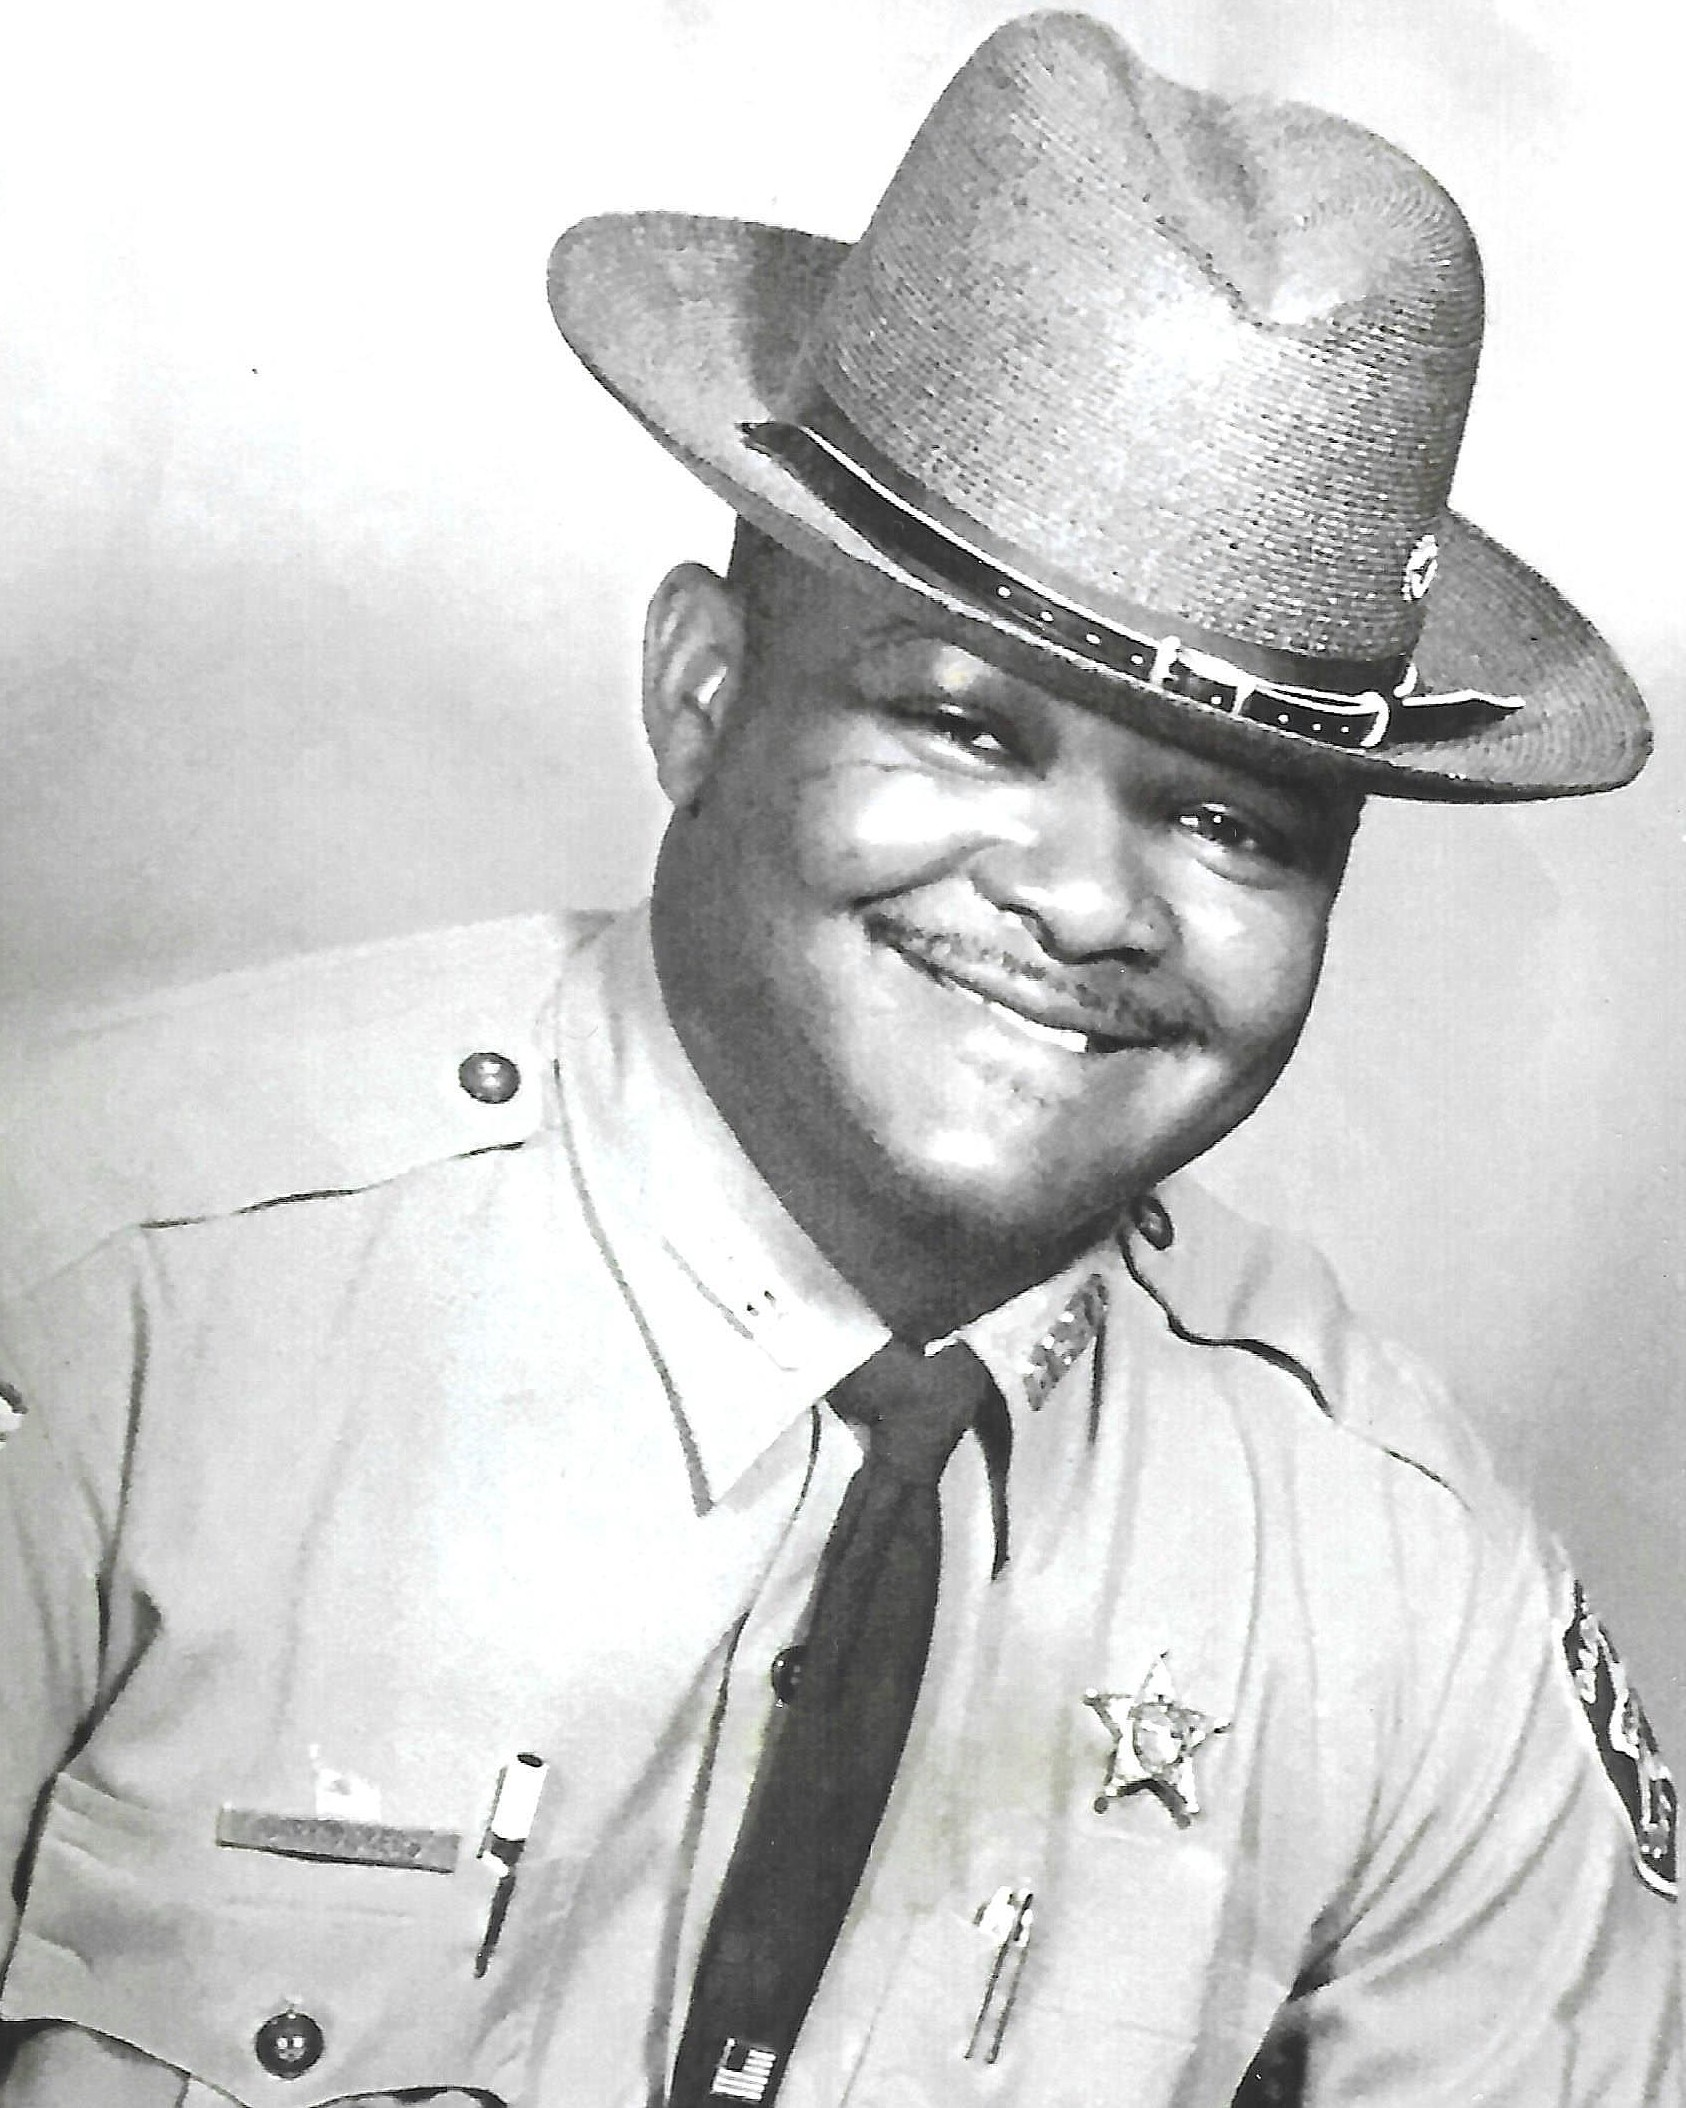 Deputy Sheriff Gary Vickers | Gadsden County Sheriff's Office, Florida